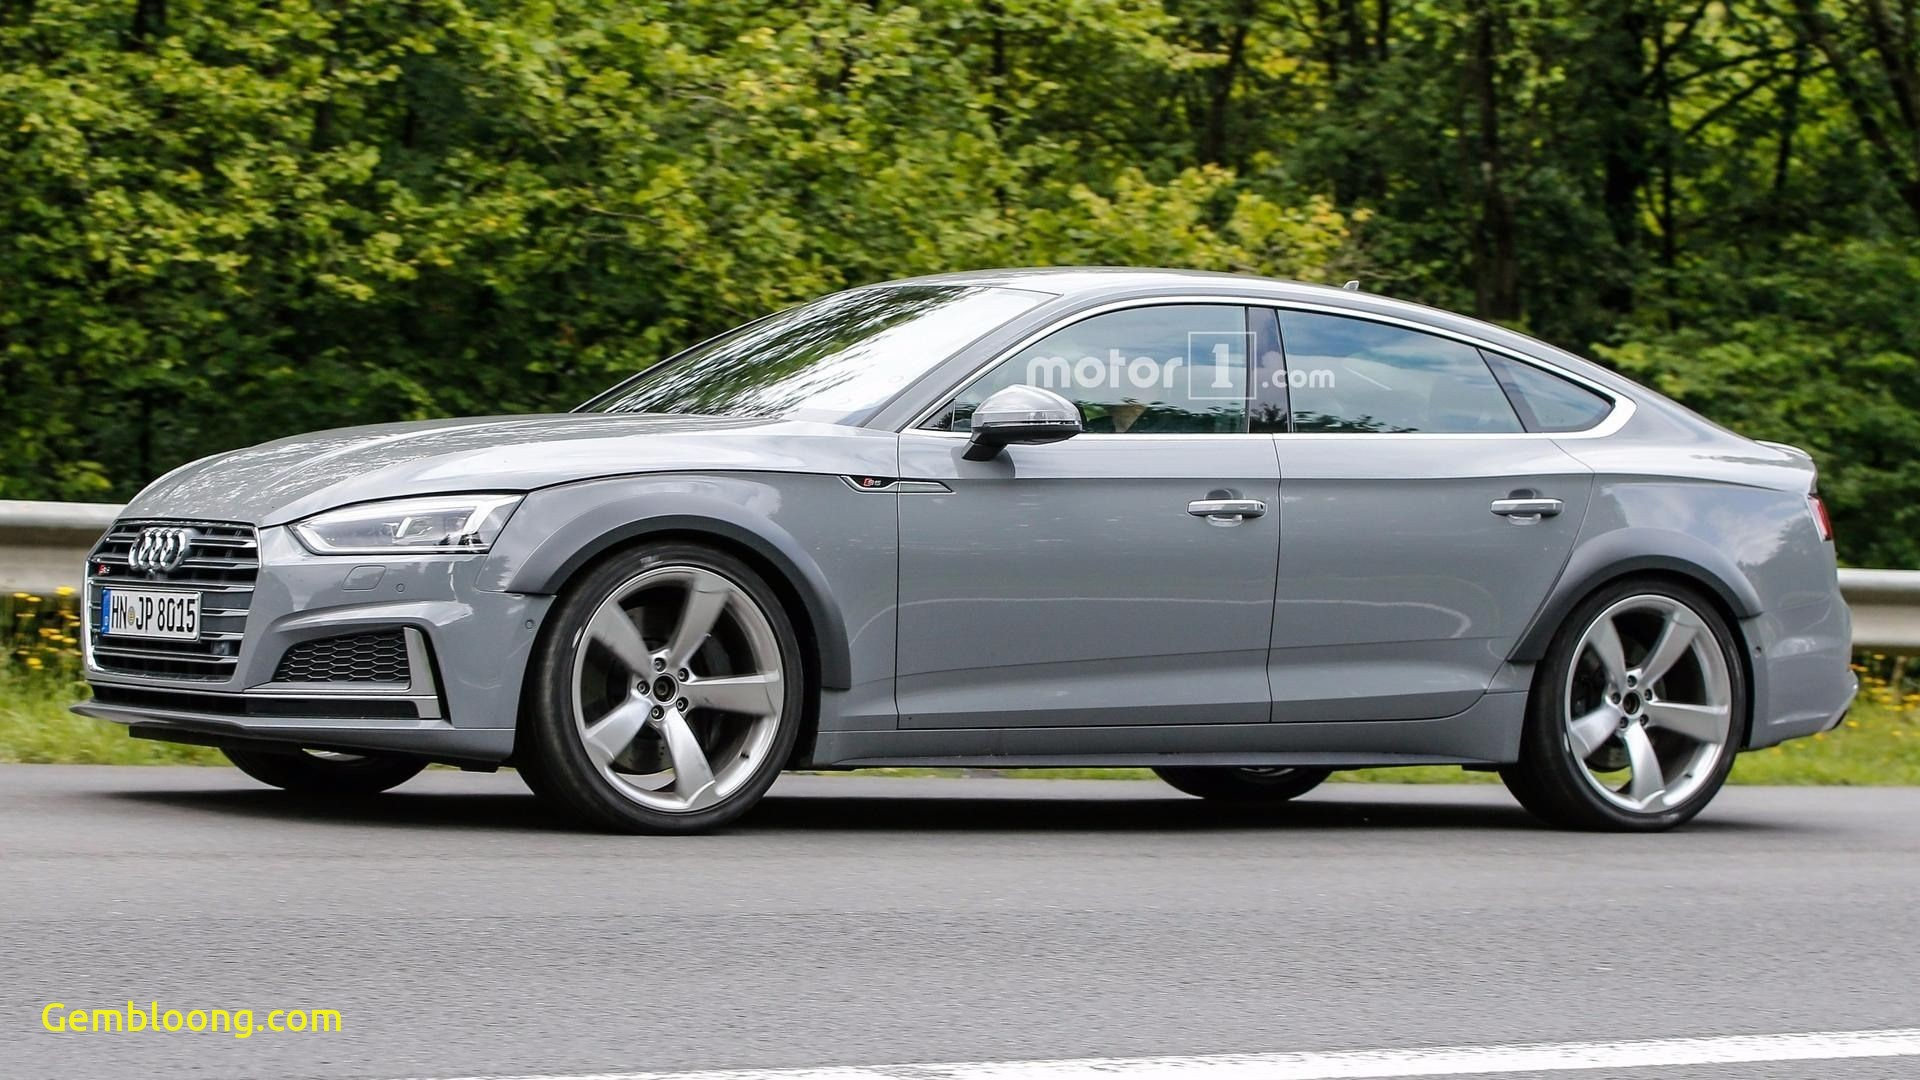 Audi S5 for Sale Inspirational 2019 Audi A5 Sportback Redesign Price and Review